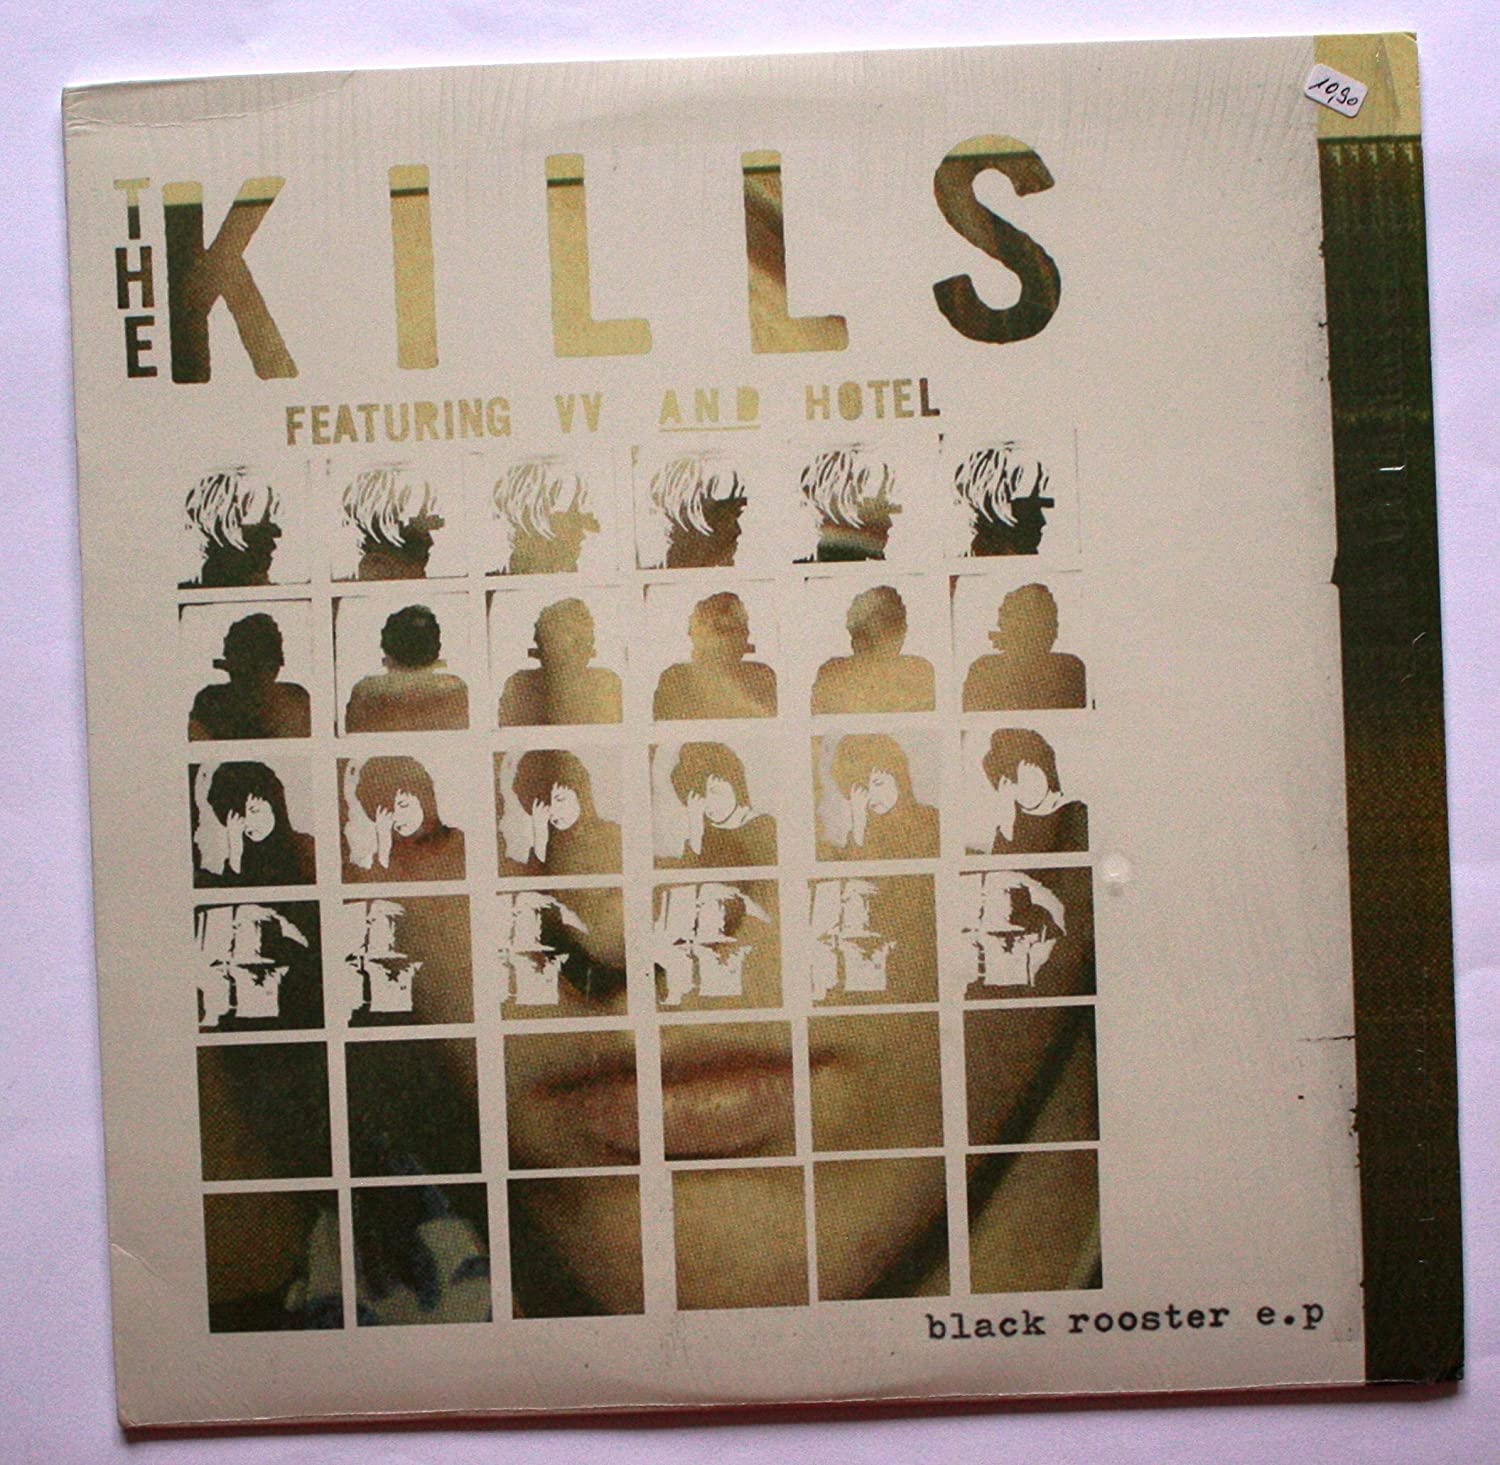 Rooster Kills Black Rooster E.p The Kills